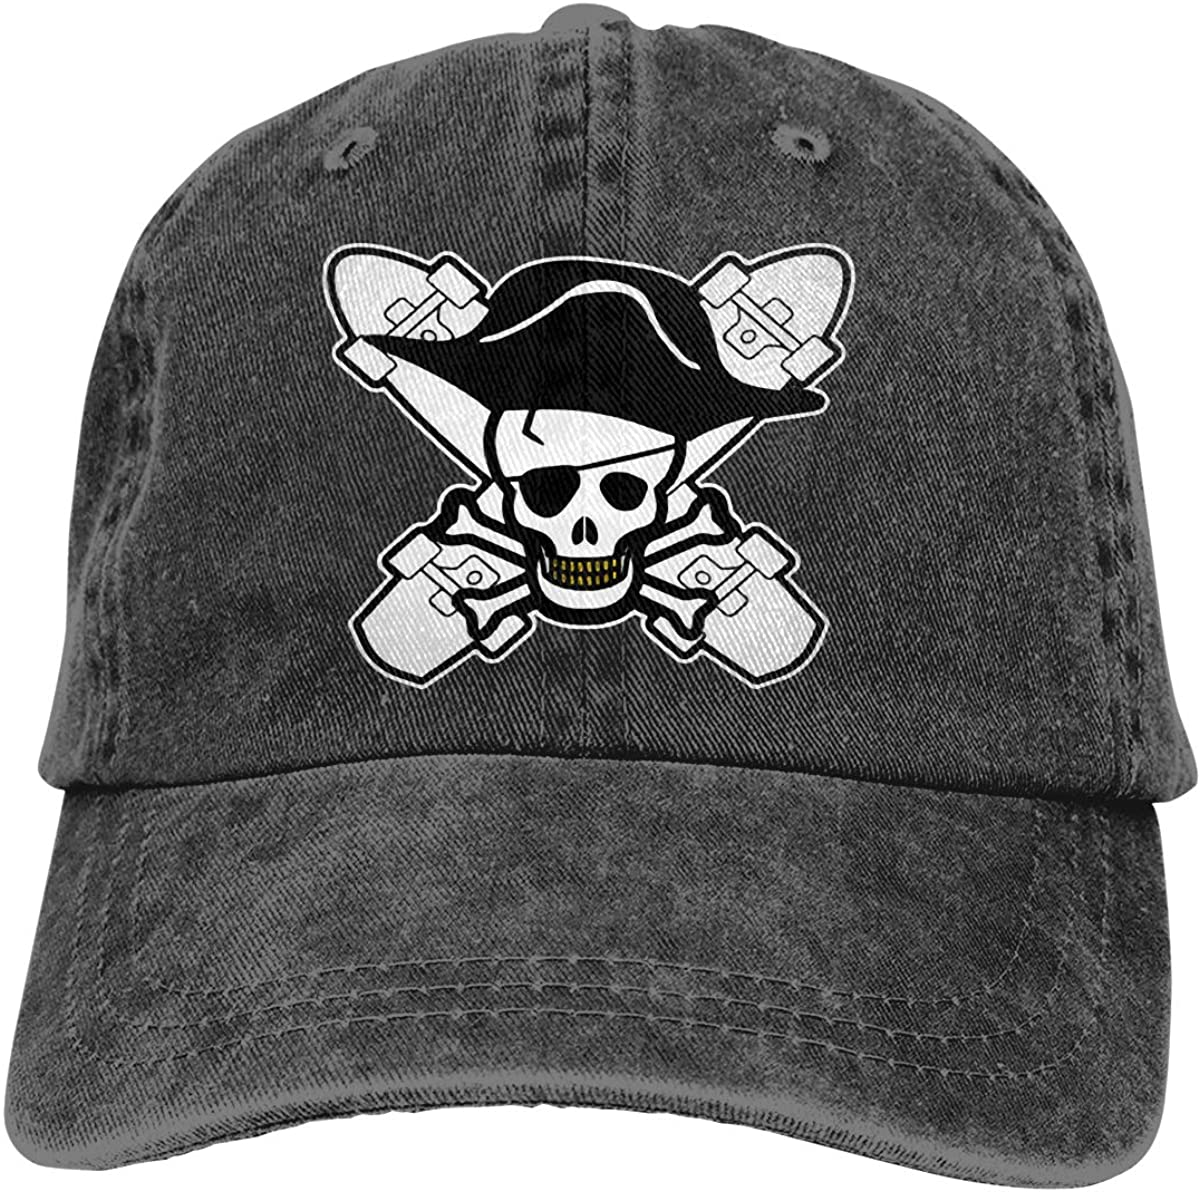 Pirate Skater Unisex Adult Cowboy Hat Outdoor Sports Hat Adjustable Truck Driver Hat